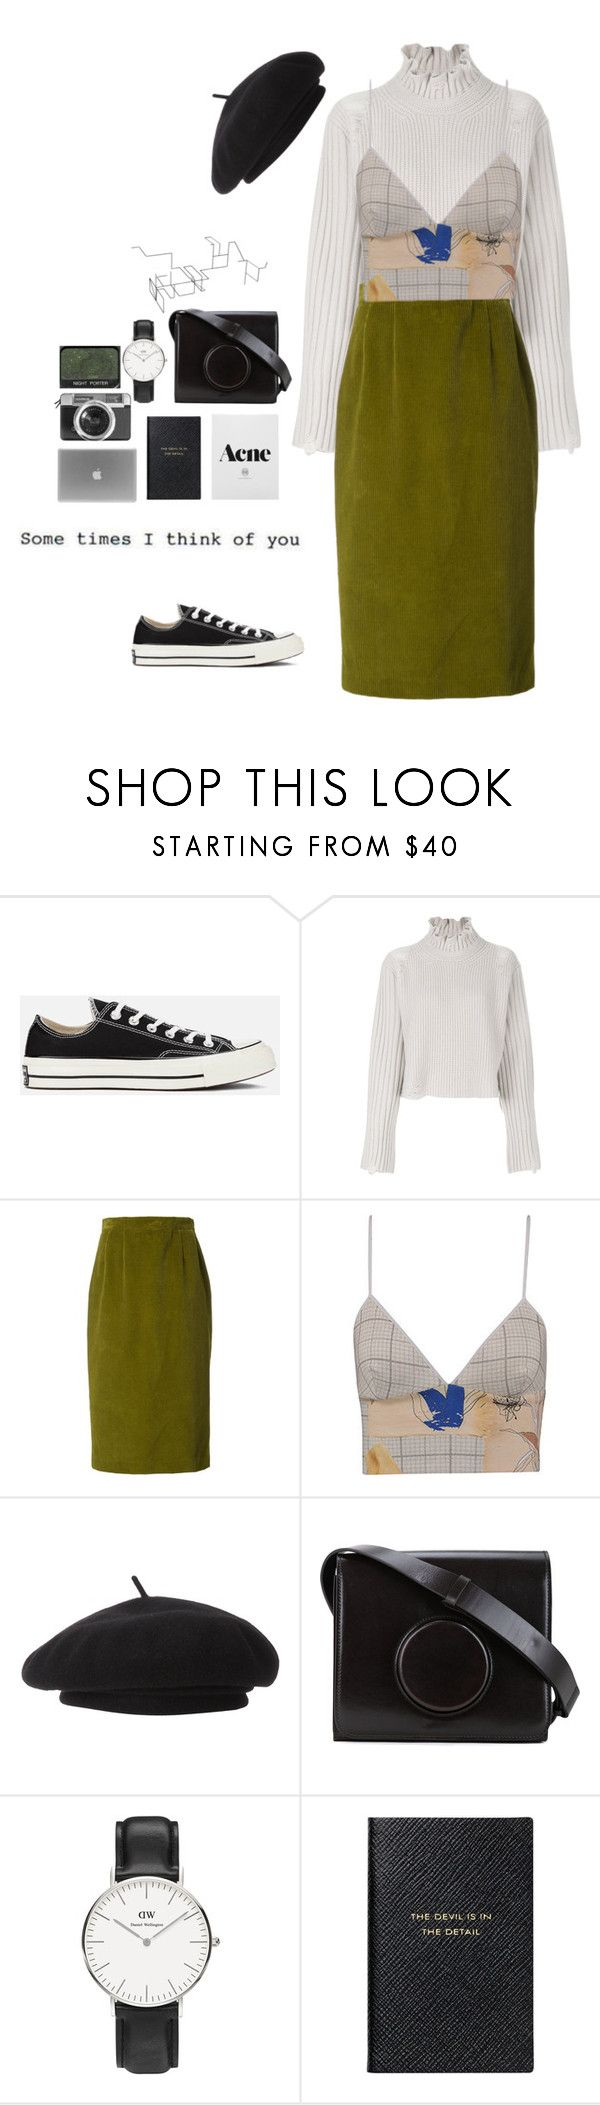 """""""I month."""" by joycereina ❤ liked on Polyvore featuring Converse, Golden Goose, Olympia Le-Tan, Clover Canyon, Parkhurst, Lemaire, Daniel Wellington, Smythson, Casetify and NARS Cosmetics"""